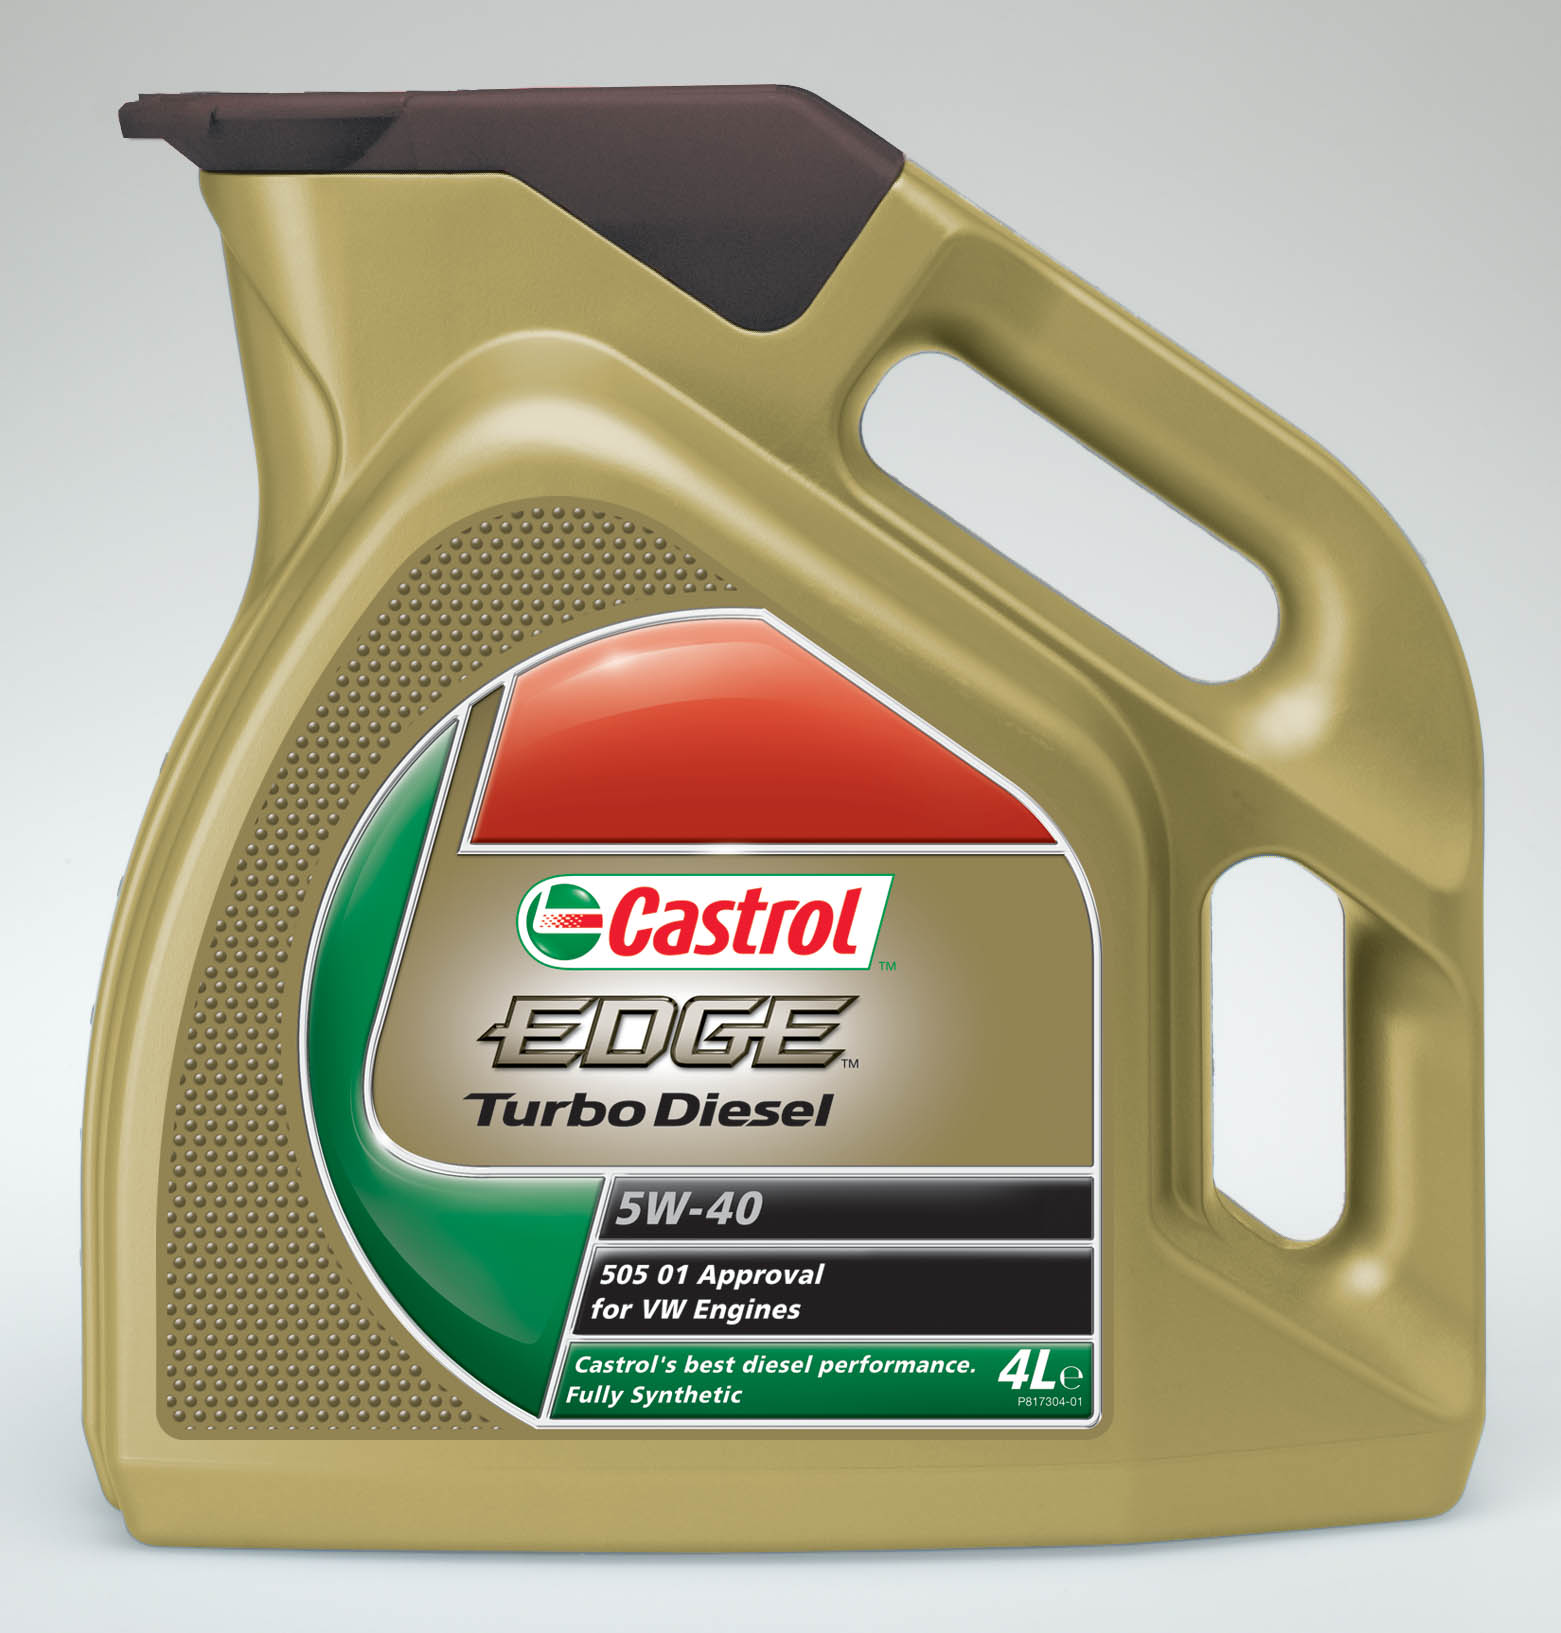 Castrol Edge 5w40 Turbo Diesel Fully Synthetic Engine